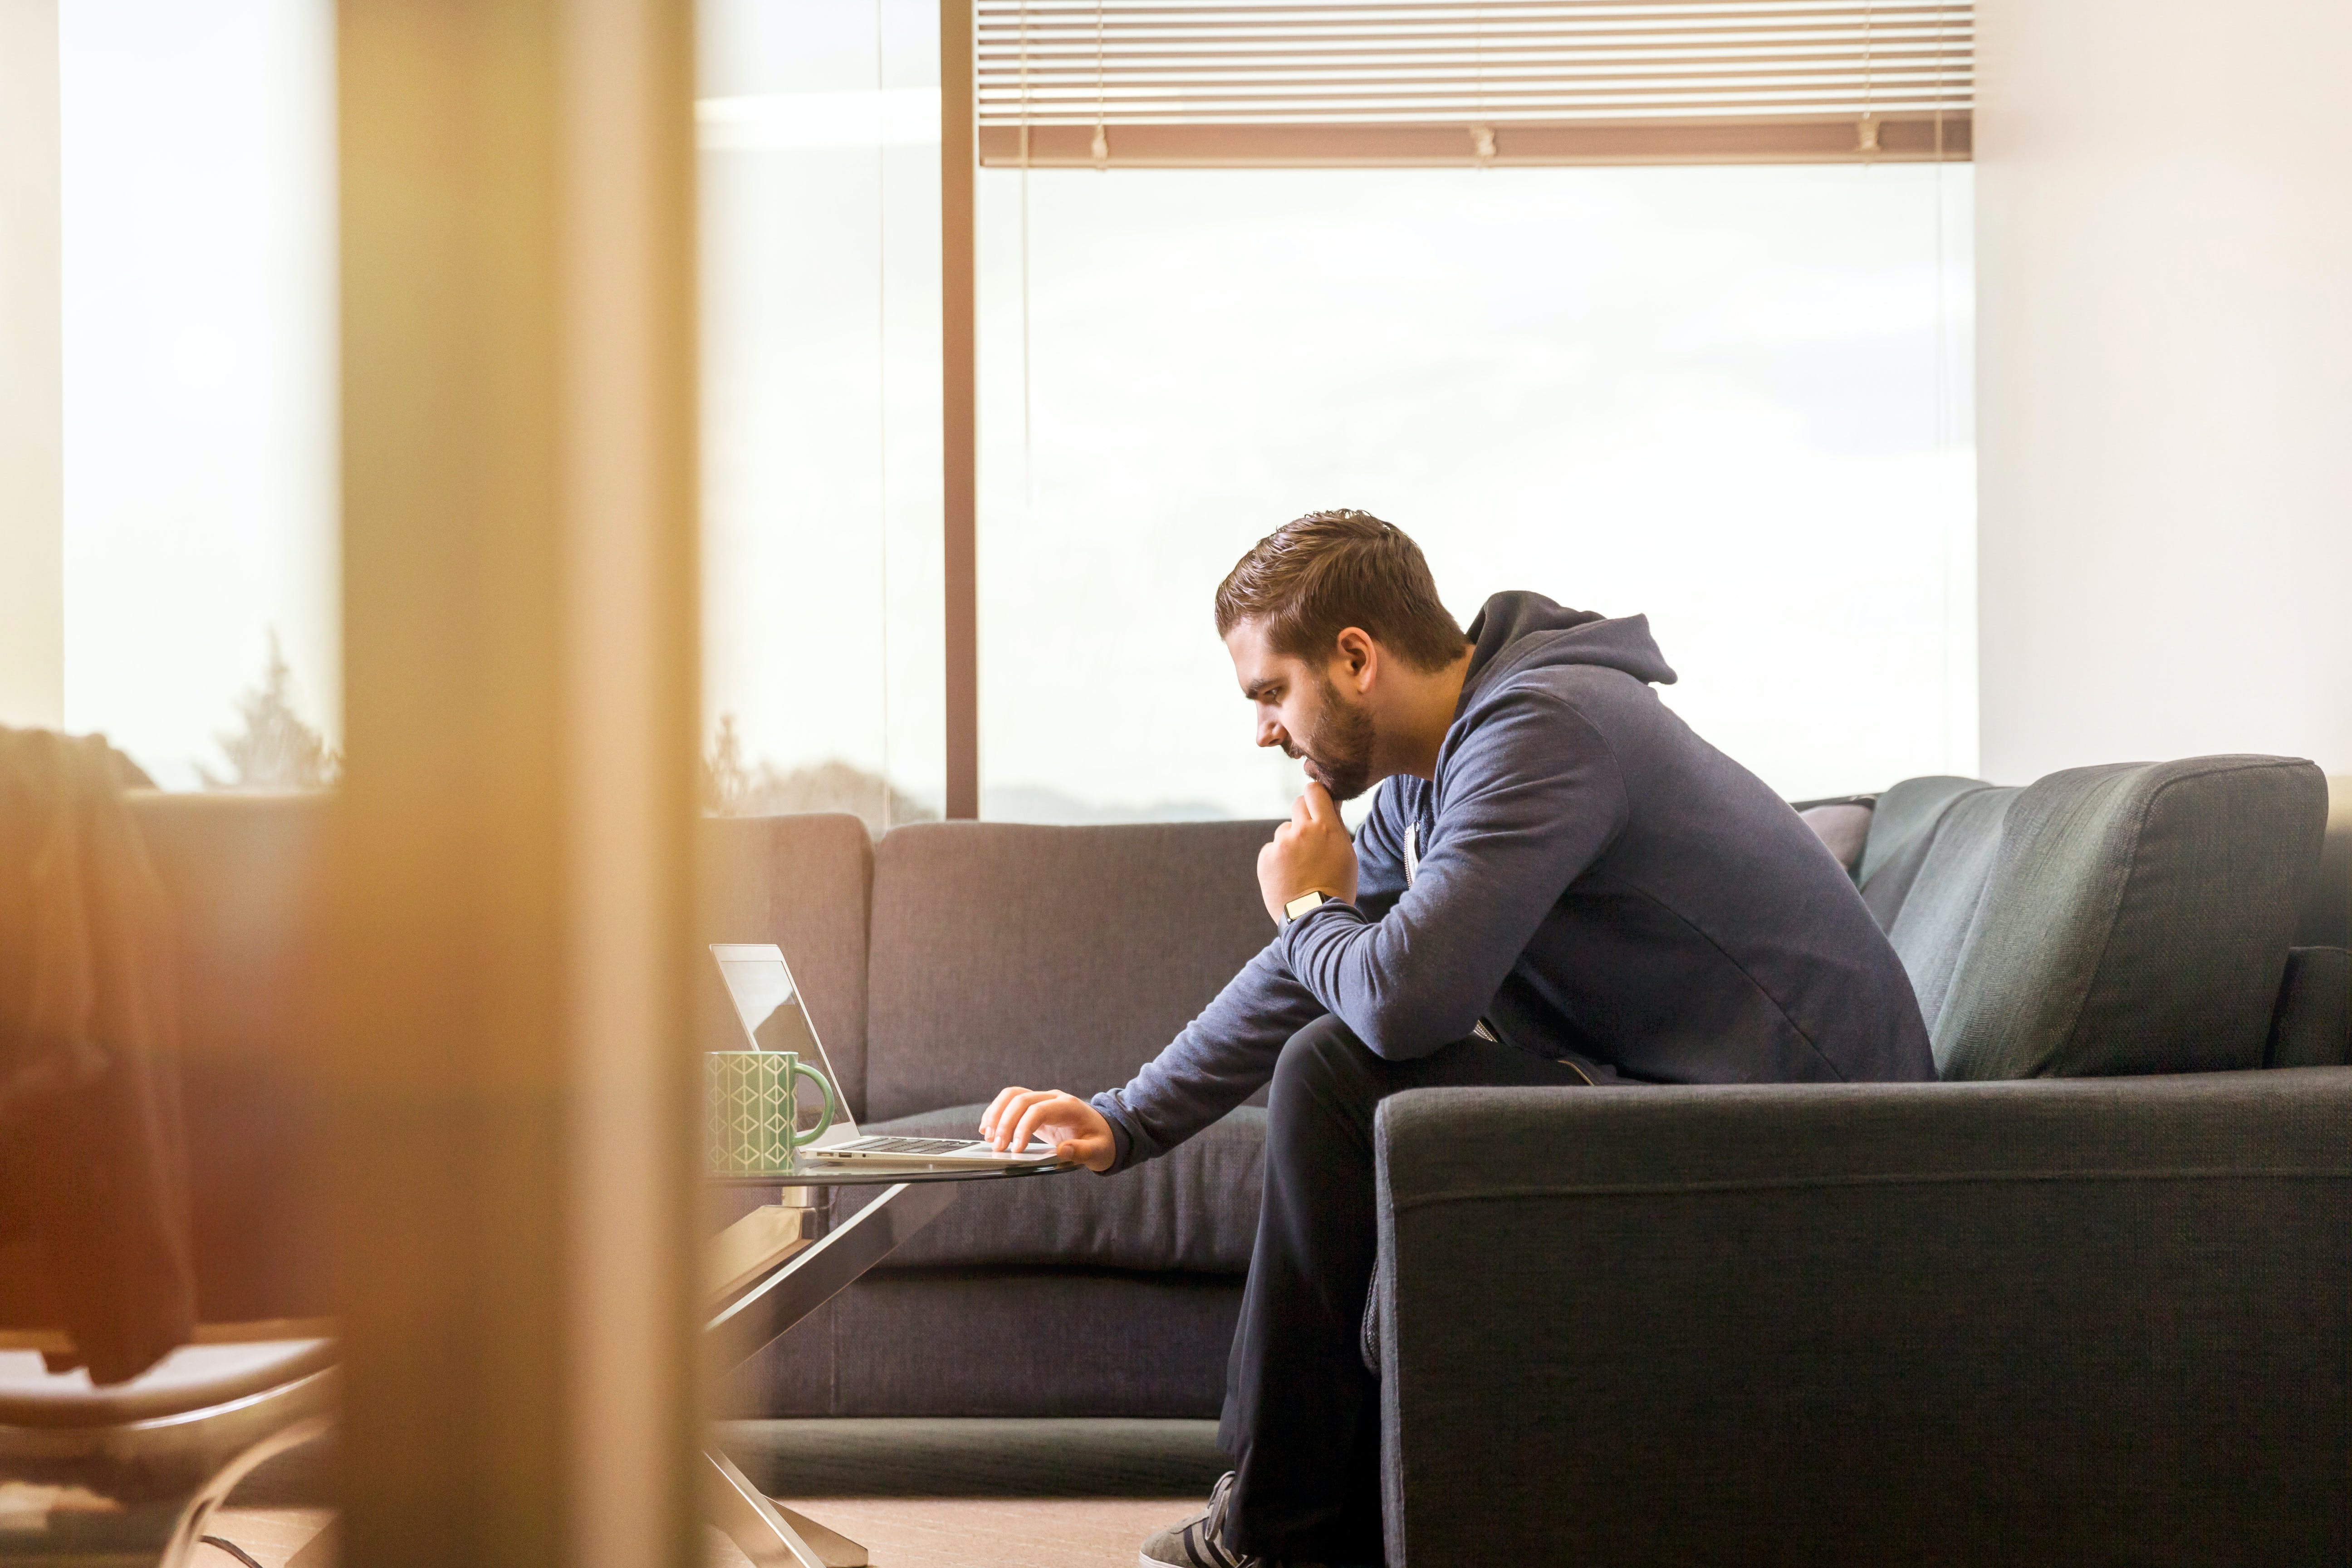 Man Using Laptop Sitting on Couch